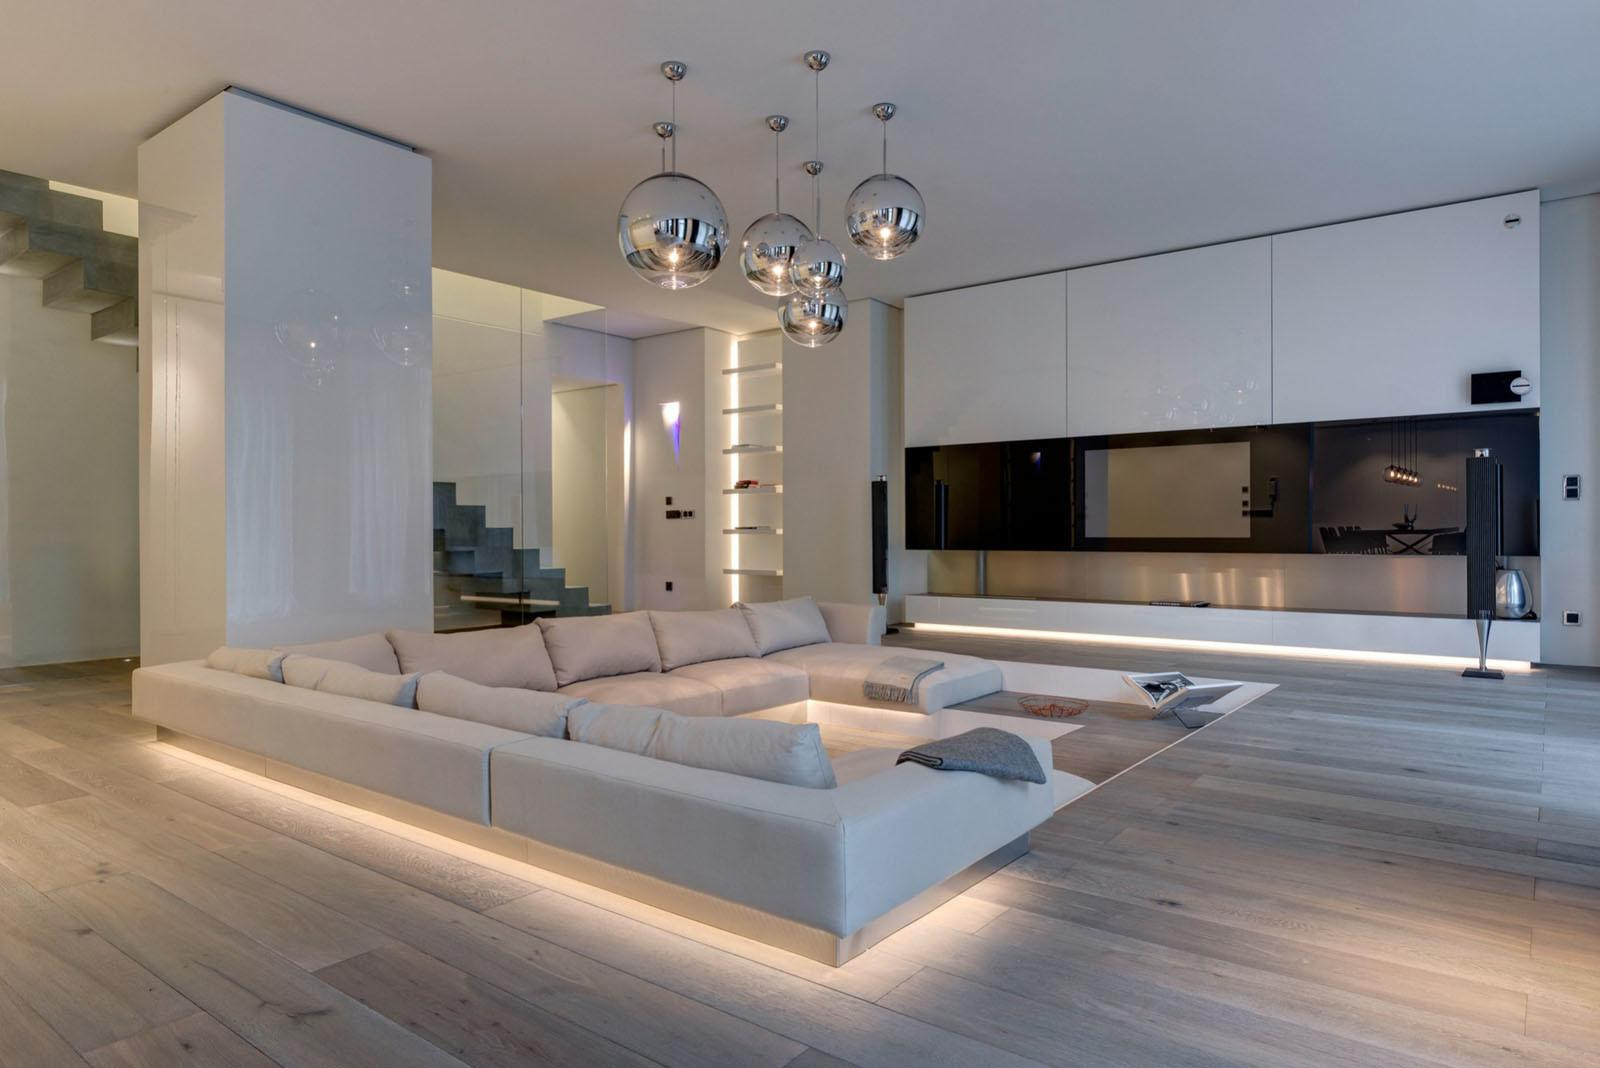 Duplex Apartment Berlin Refined Luxury Interior